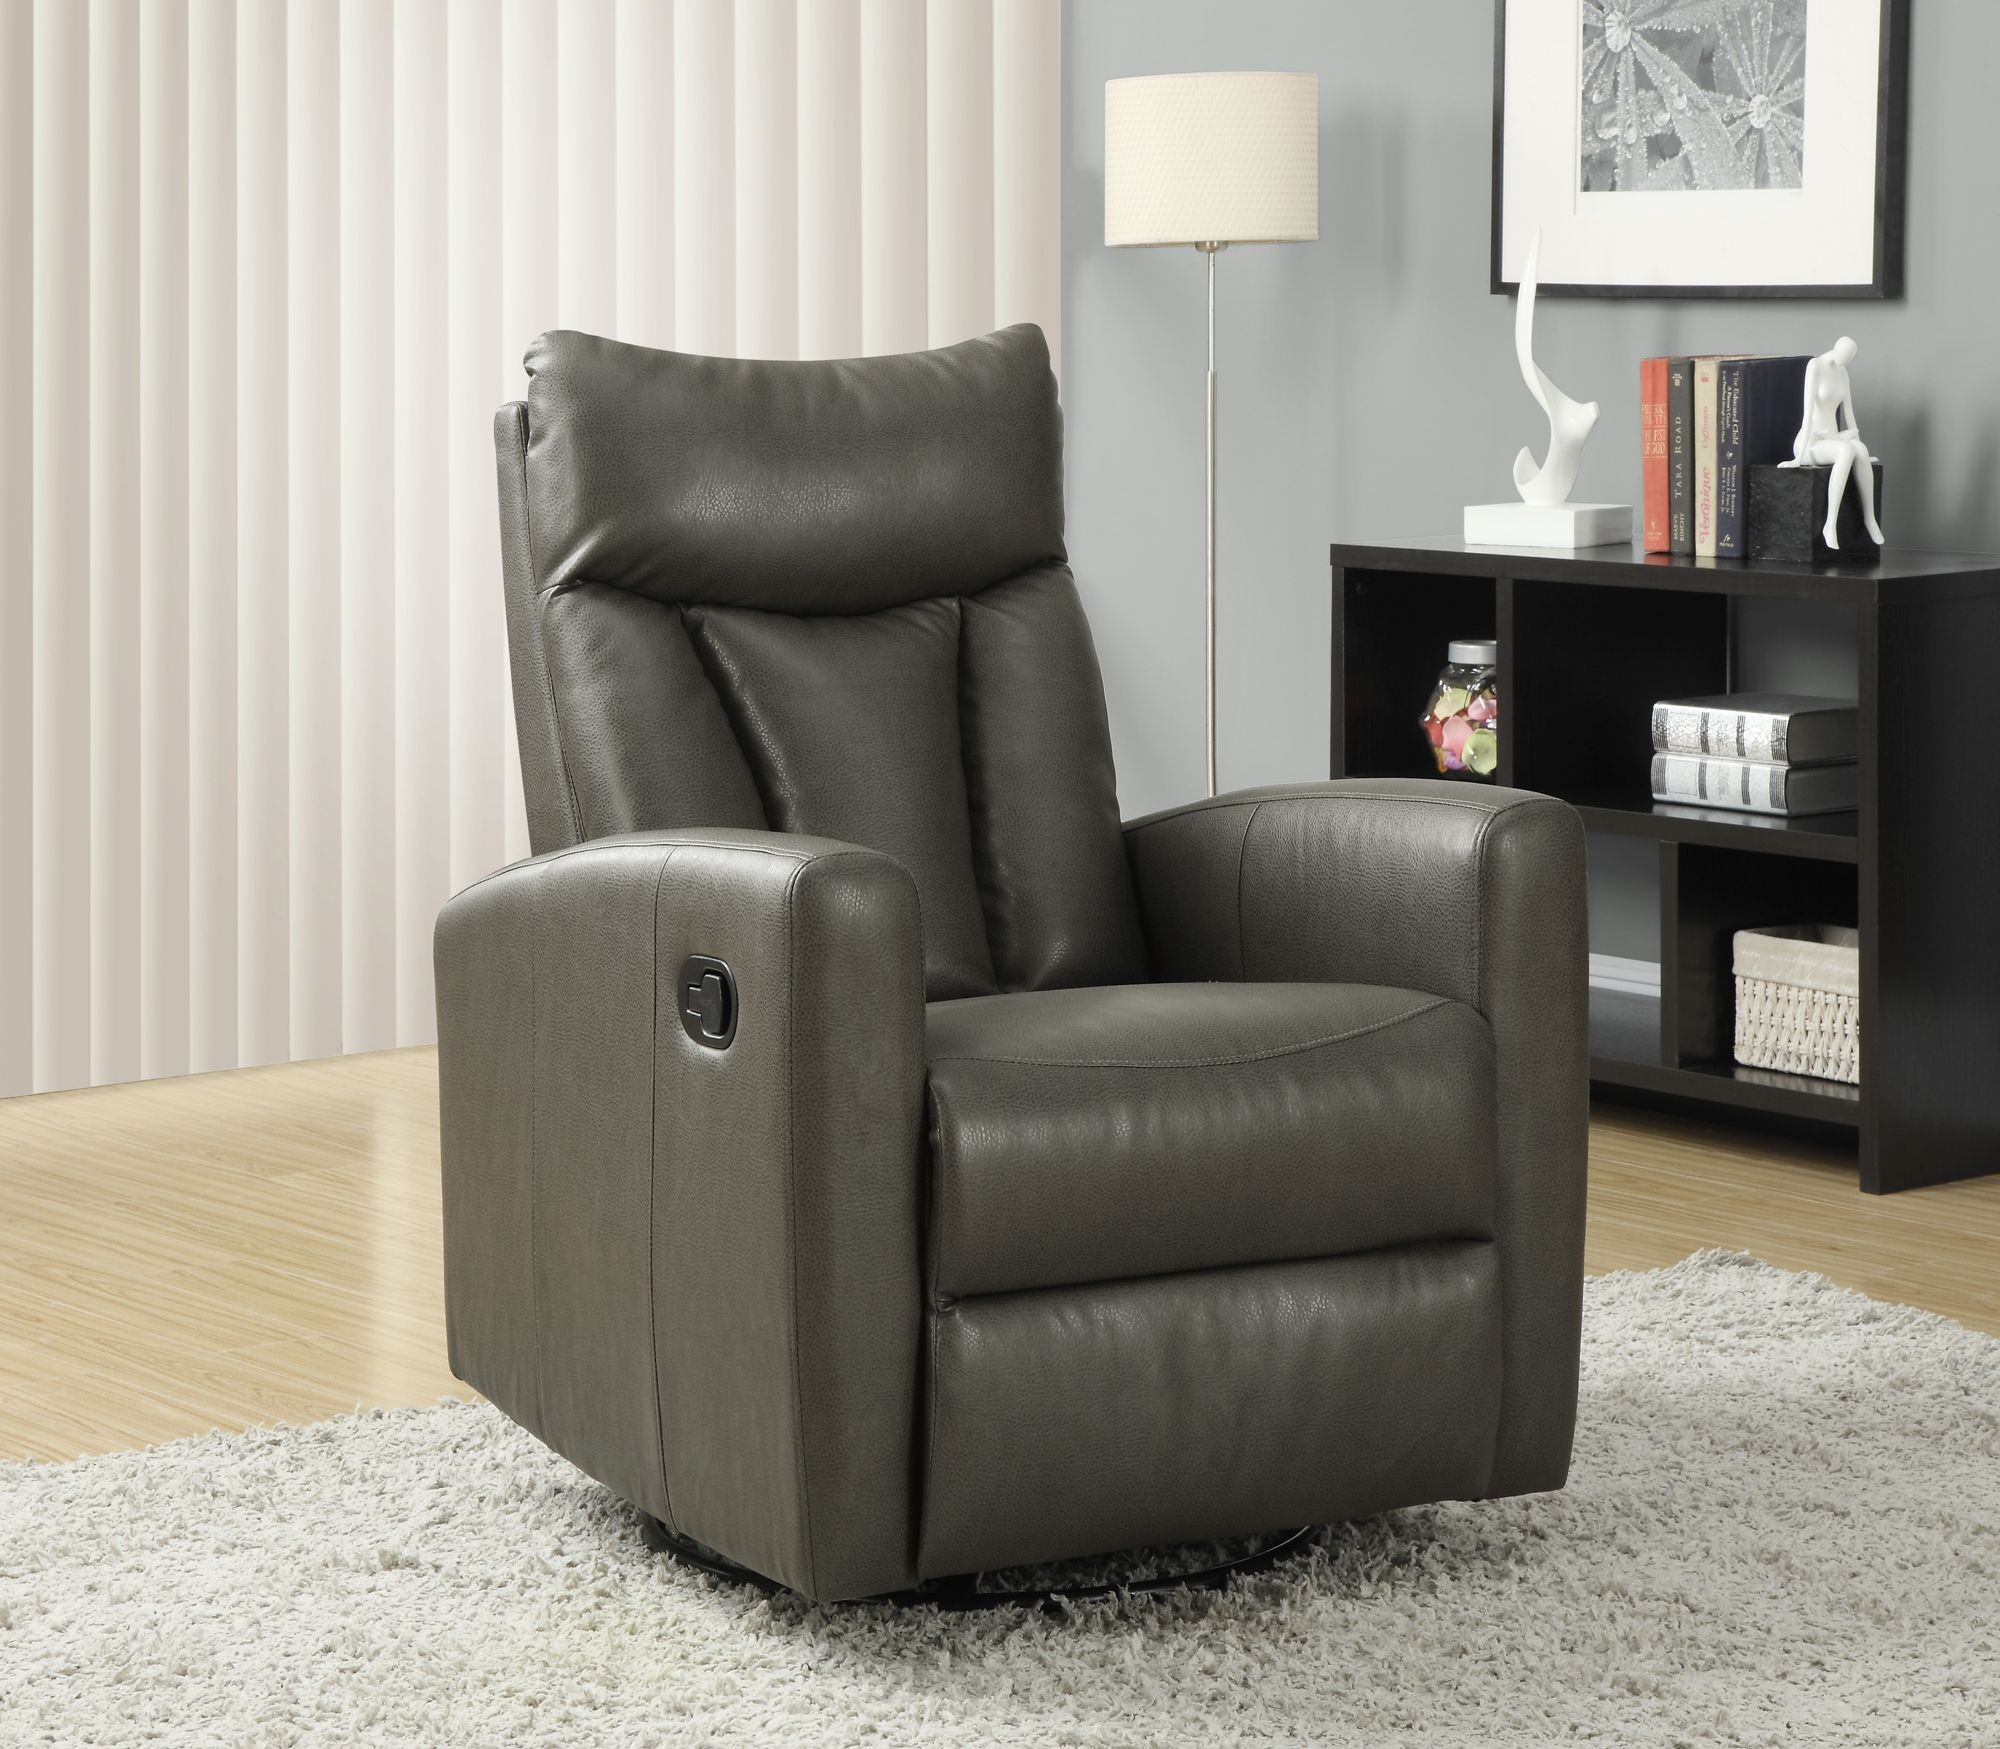 Gray Recliner Chair Charcoal Gray Swivel Glider Recliner 8087gy From Monarch